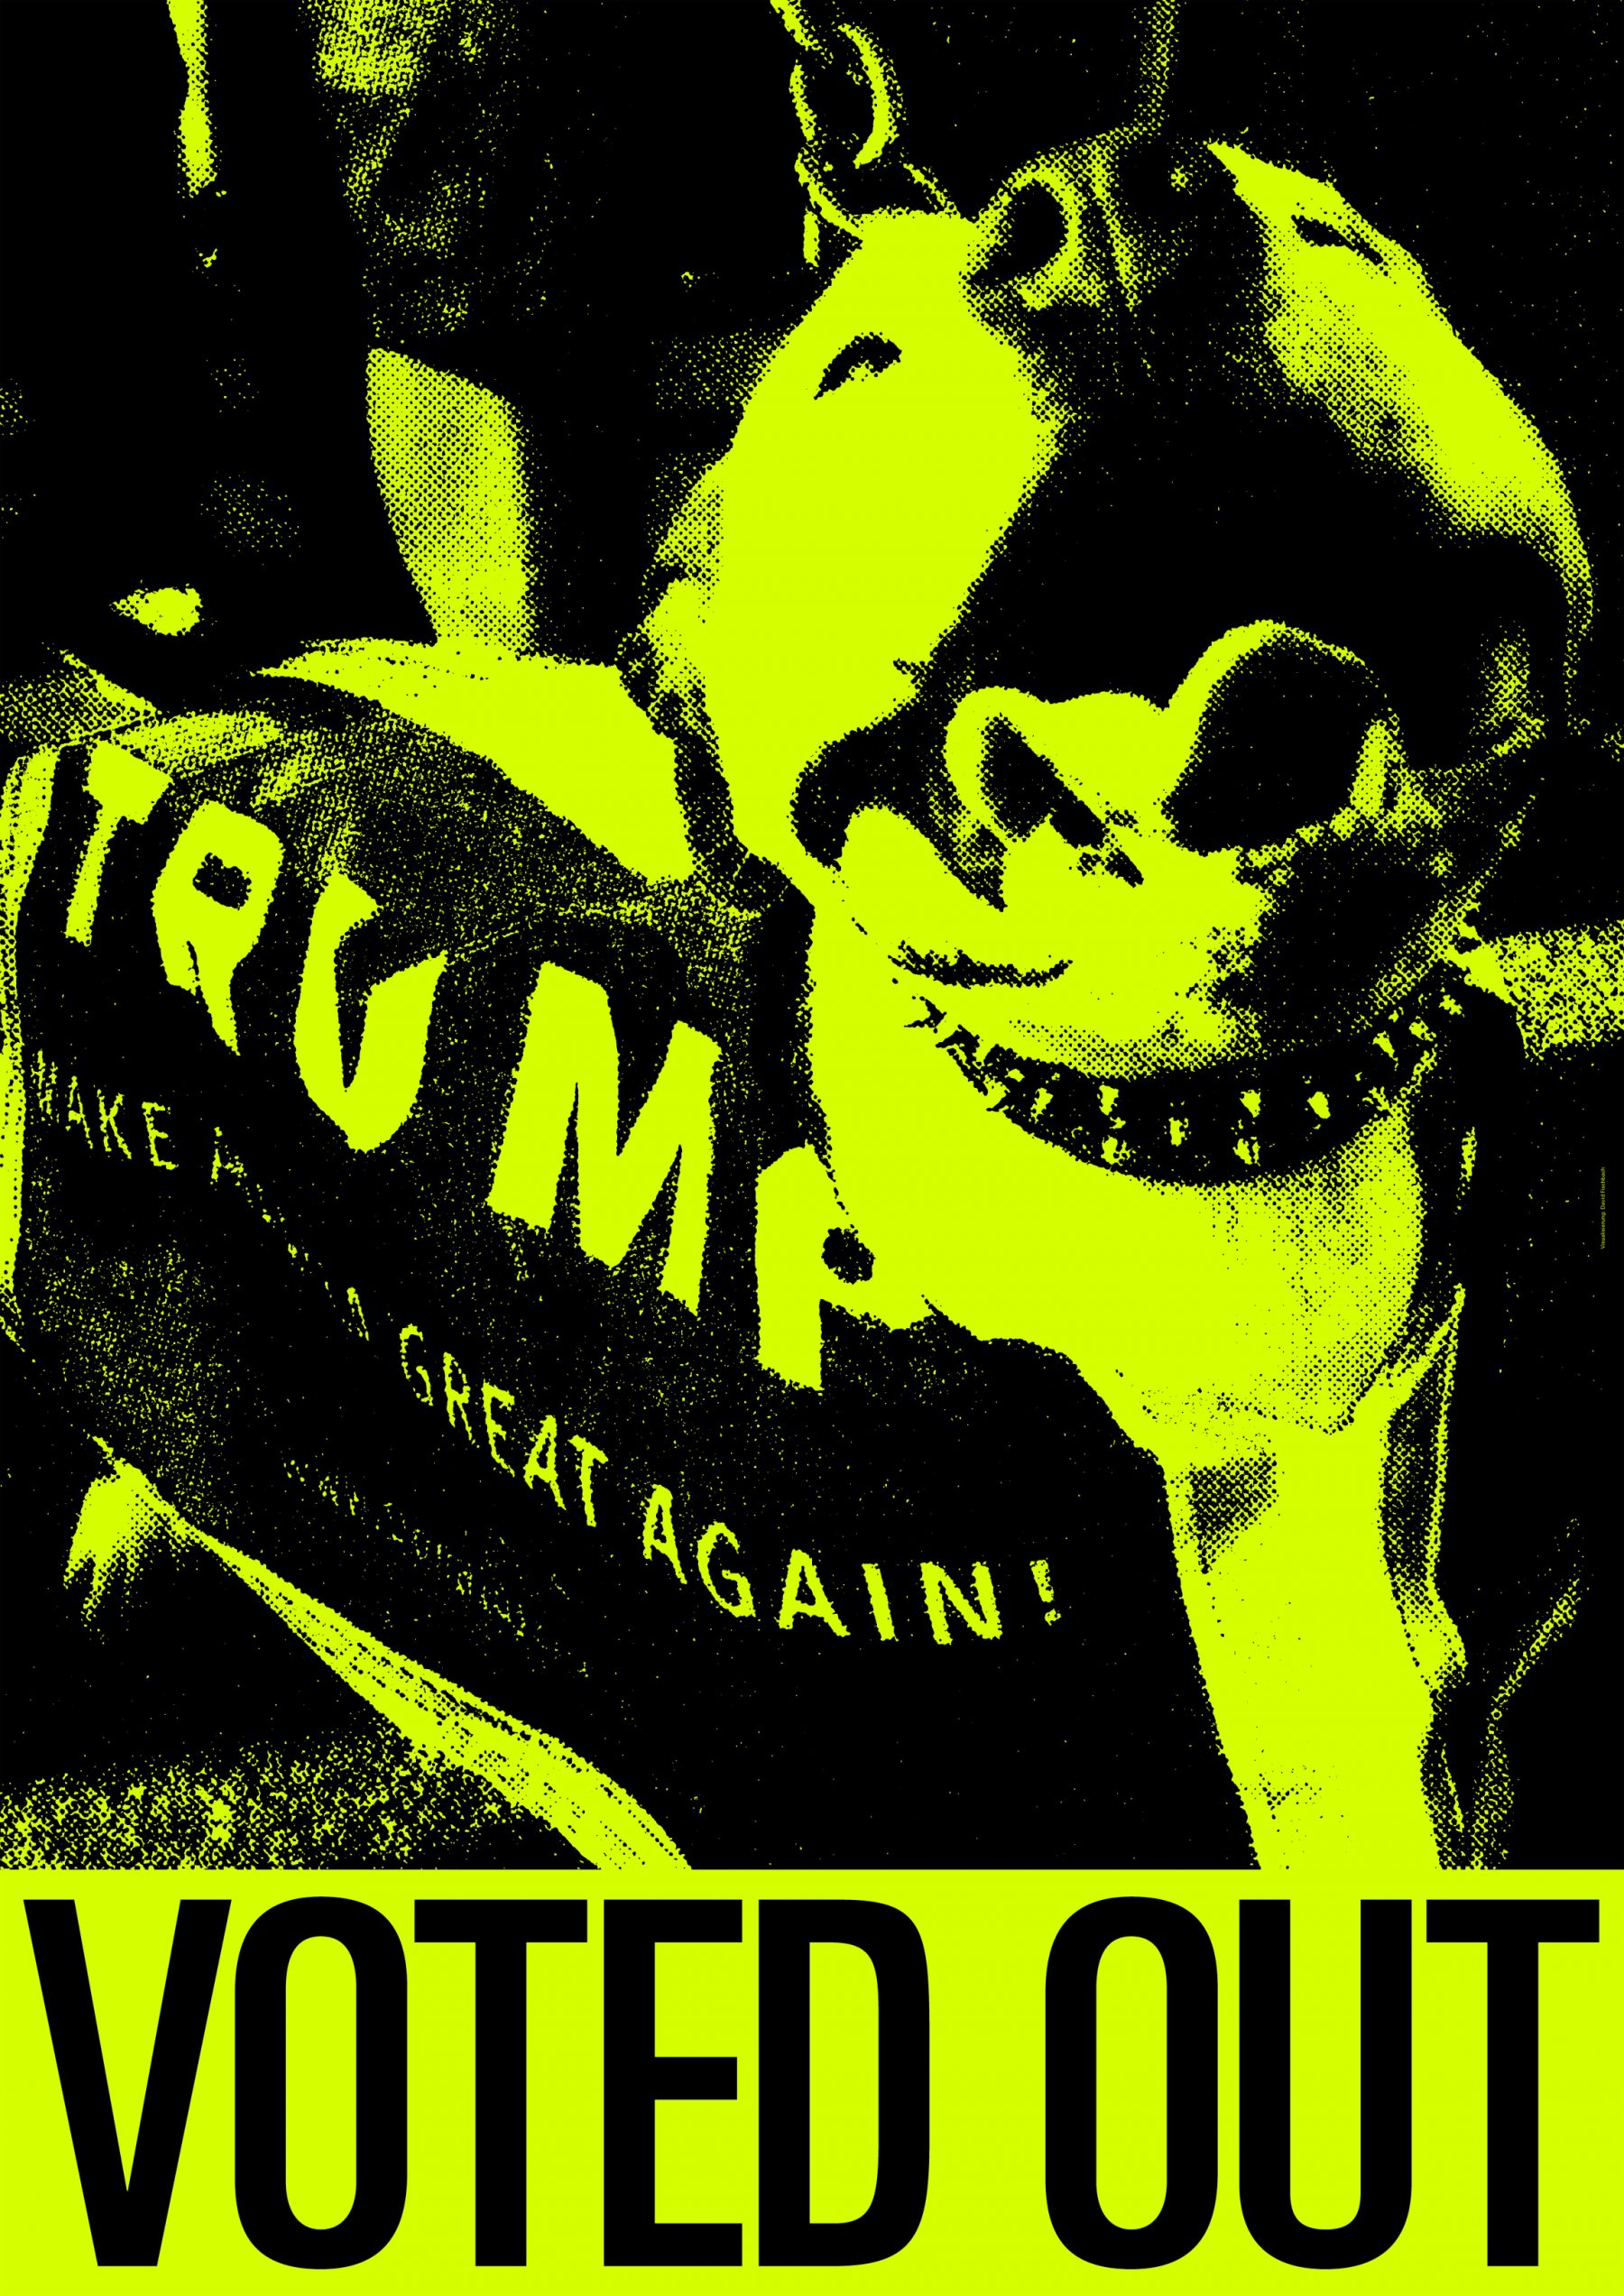 VOTED OUT, presidential election USA 2020, Donald Trump, Poster, David Fischbach